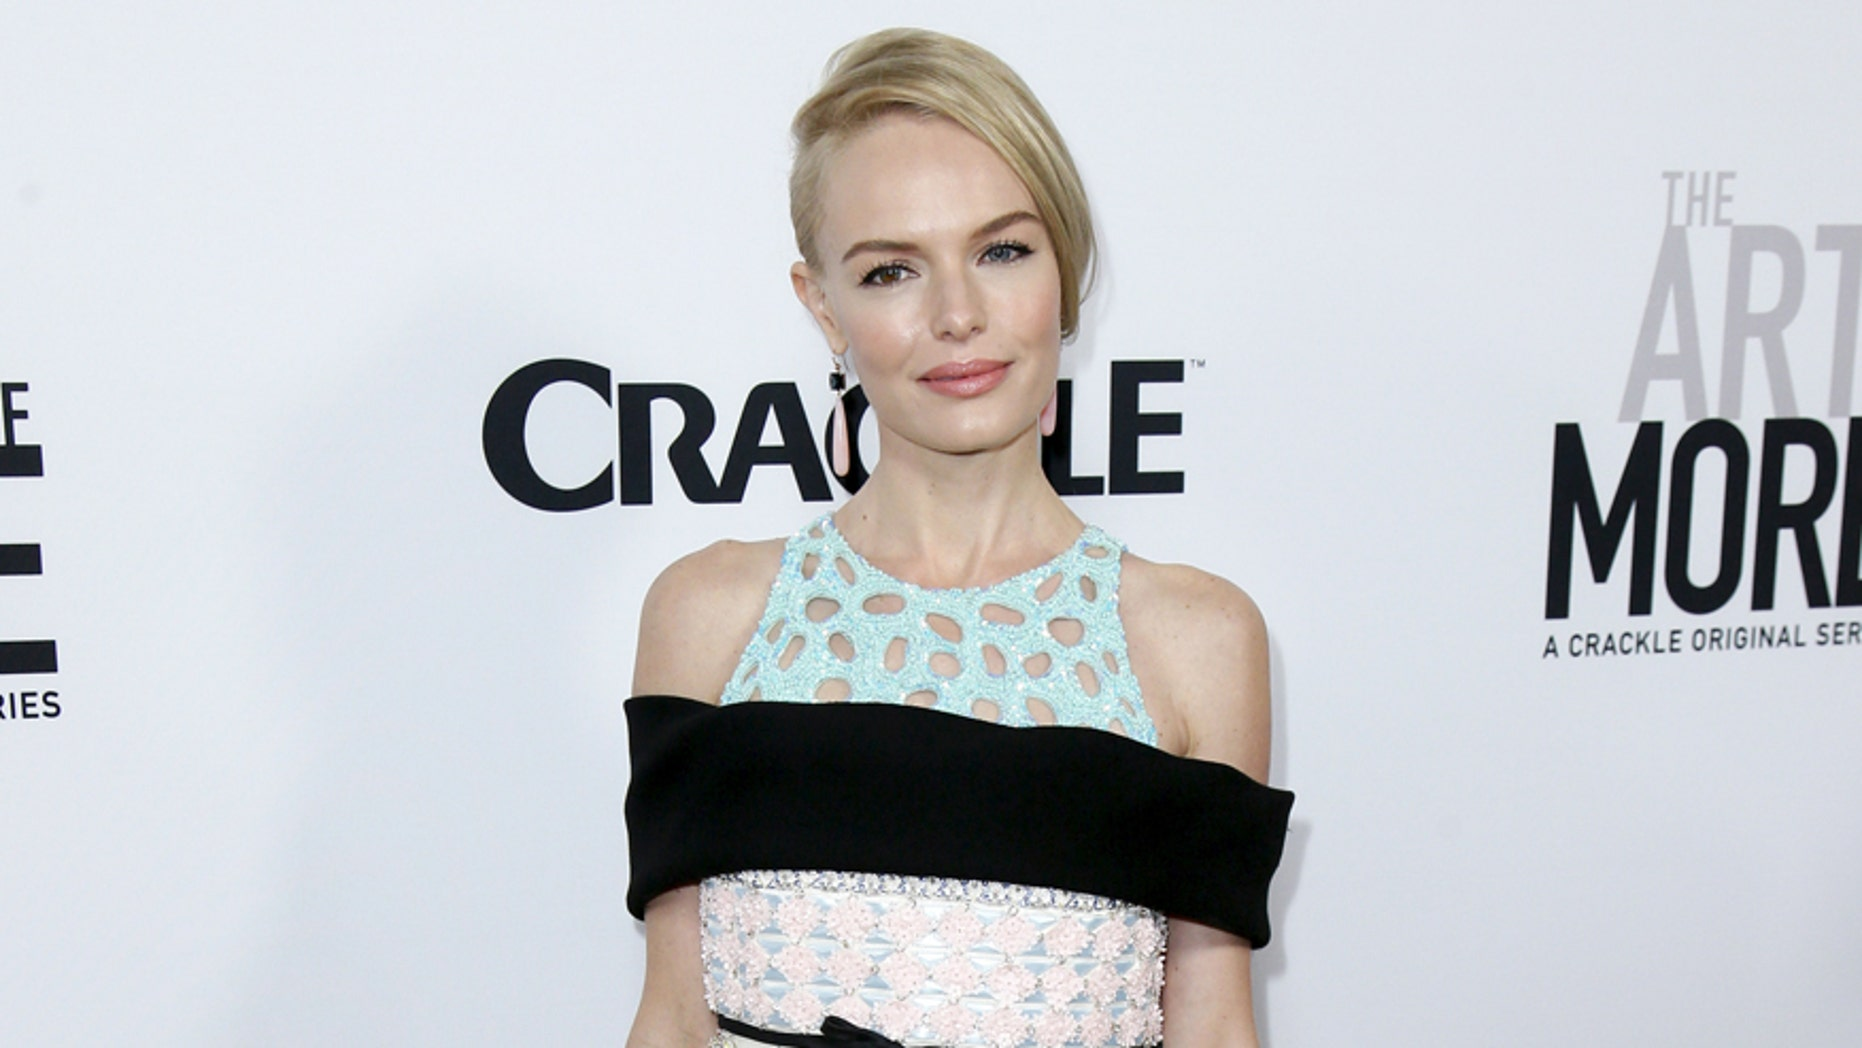 """Cast member Kate Bosworth poses at a screening of Crackle's first original scripted drama from Sony's streaming network """"The Art of More,"""" at Sony Pictures Studios in Culver City, California October 29, 2015. REUTERS/Danny Moloshok - RTX1TW6F"""